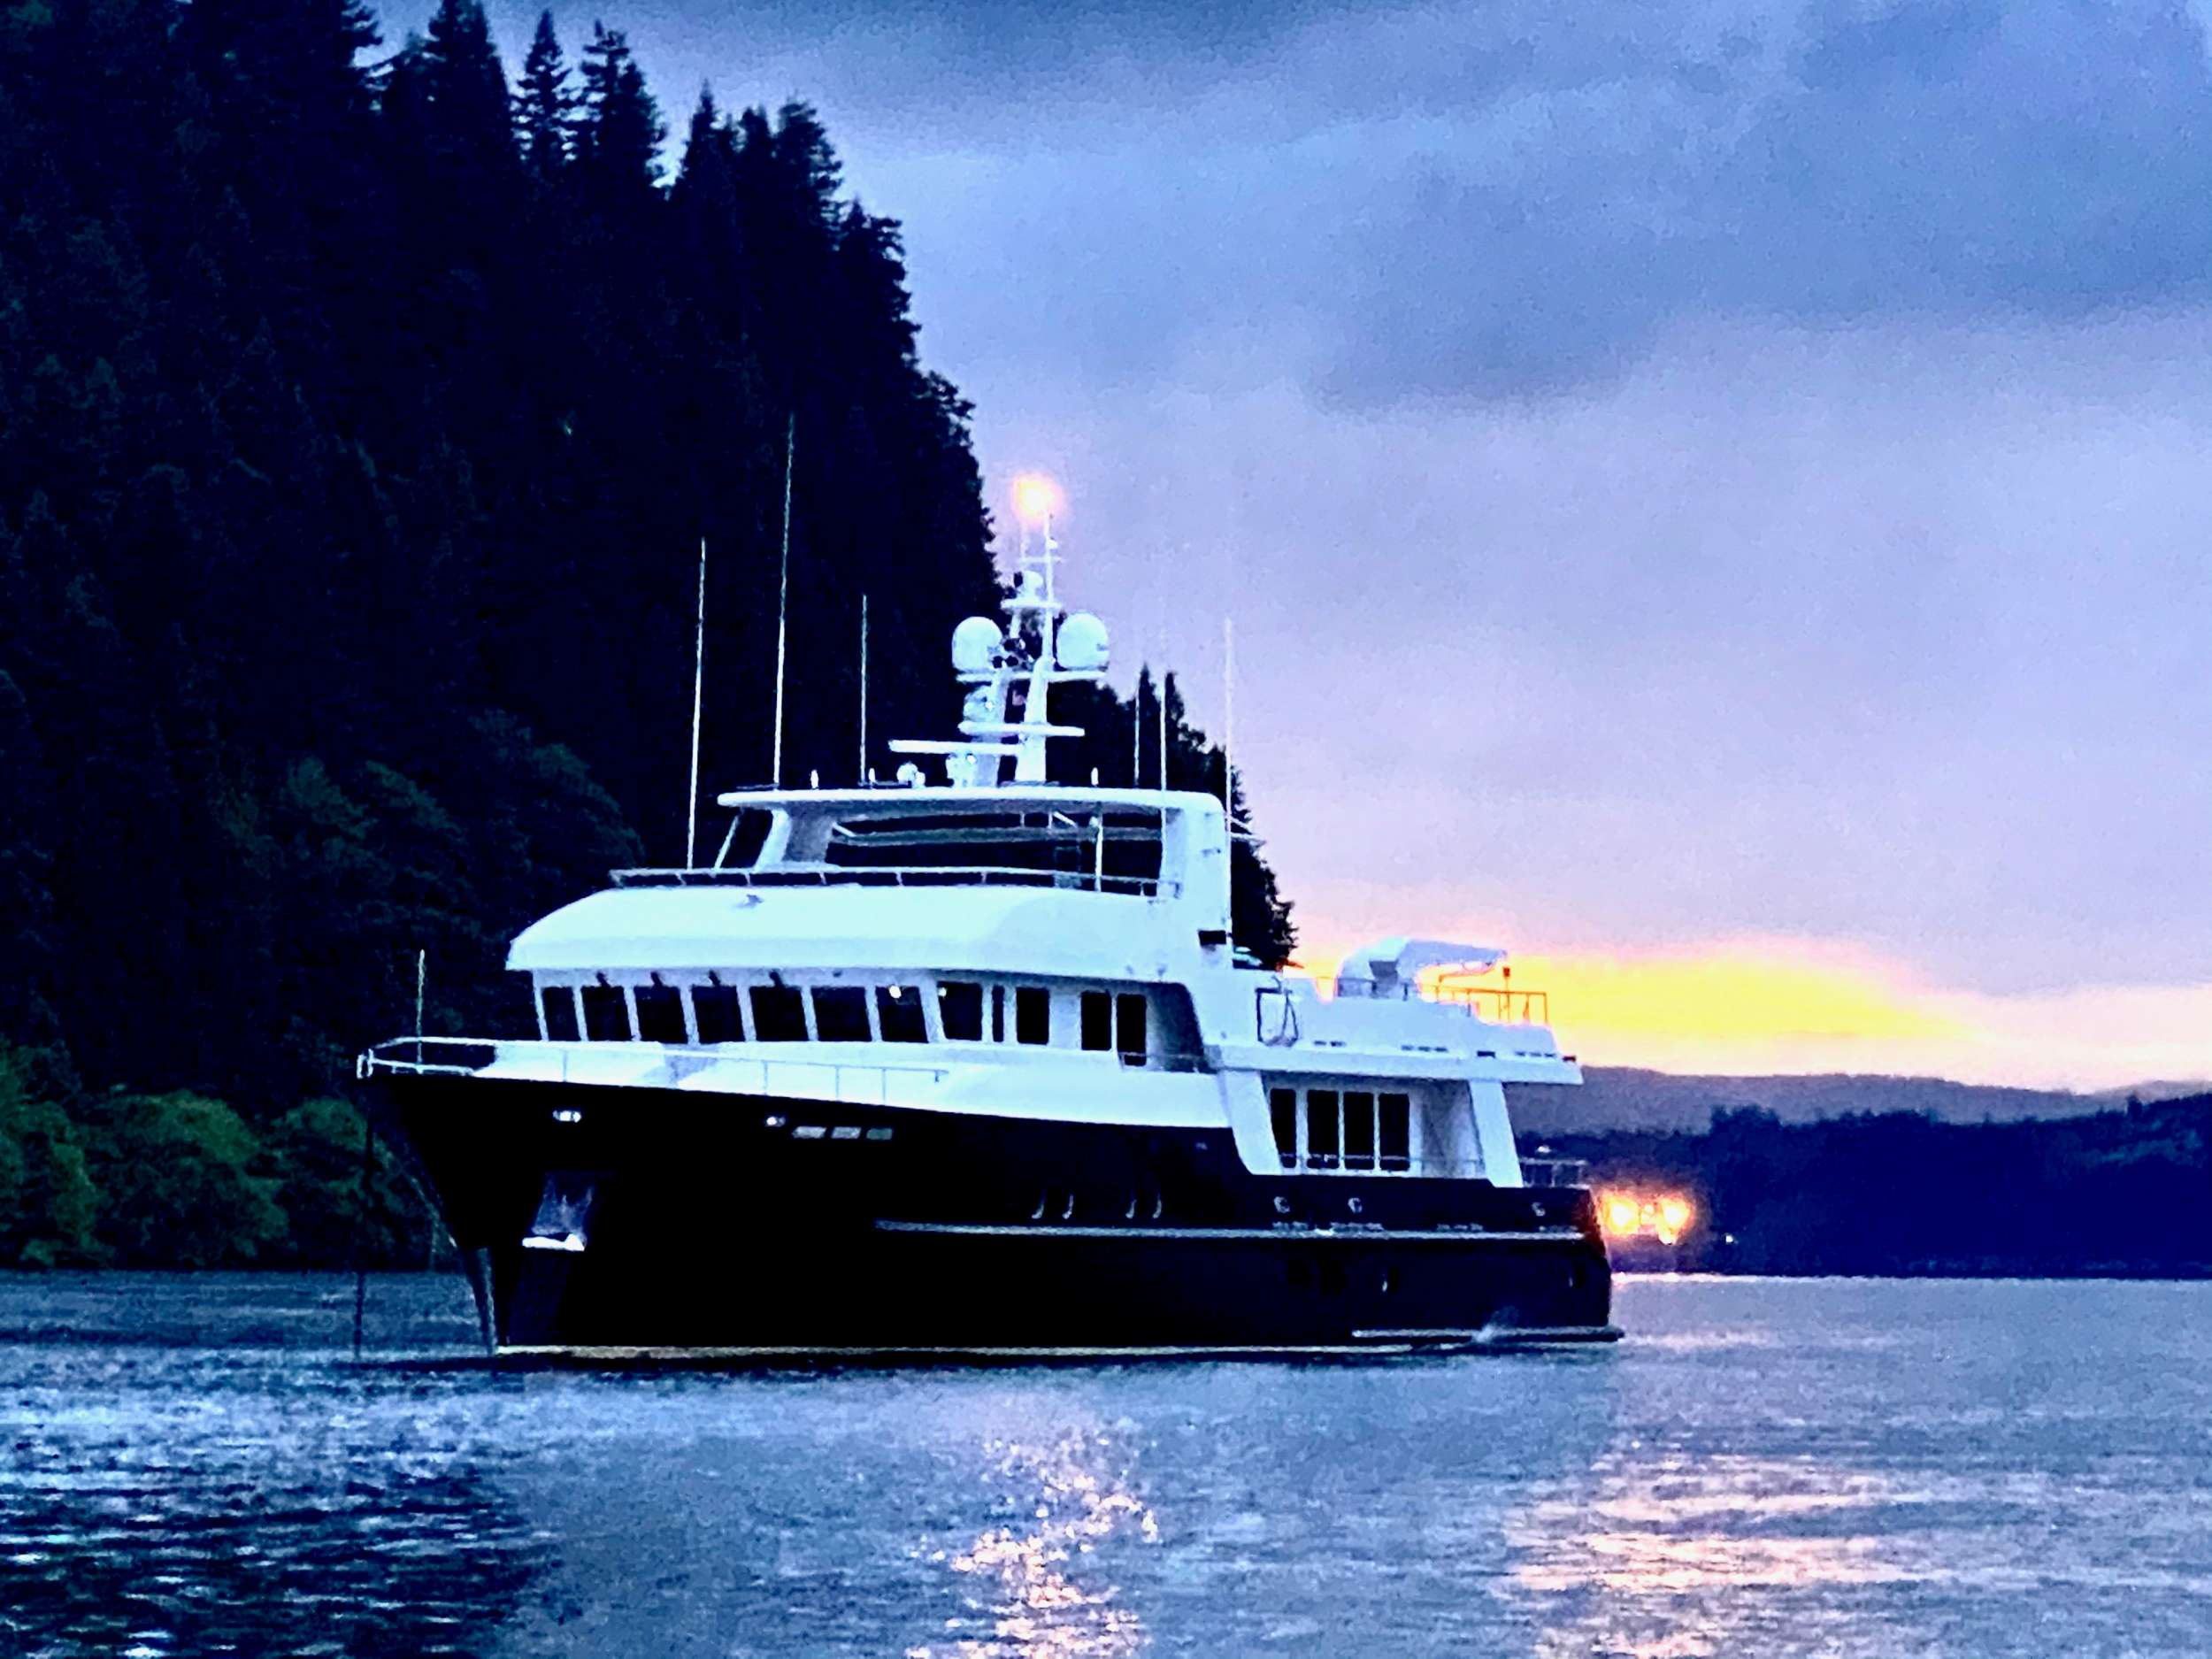 99ft Maxi Marine Group motor yacht Samsara operates in the US West Coast, Alaska, California, Pacific NW and Central America